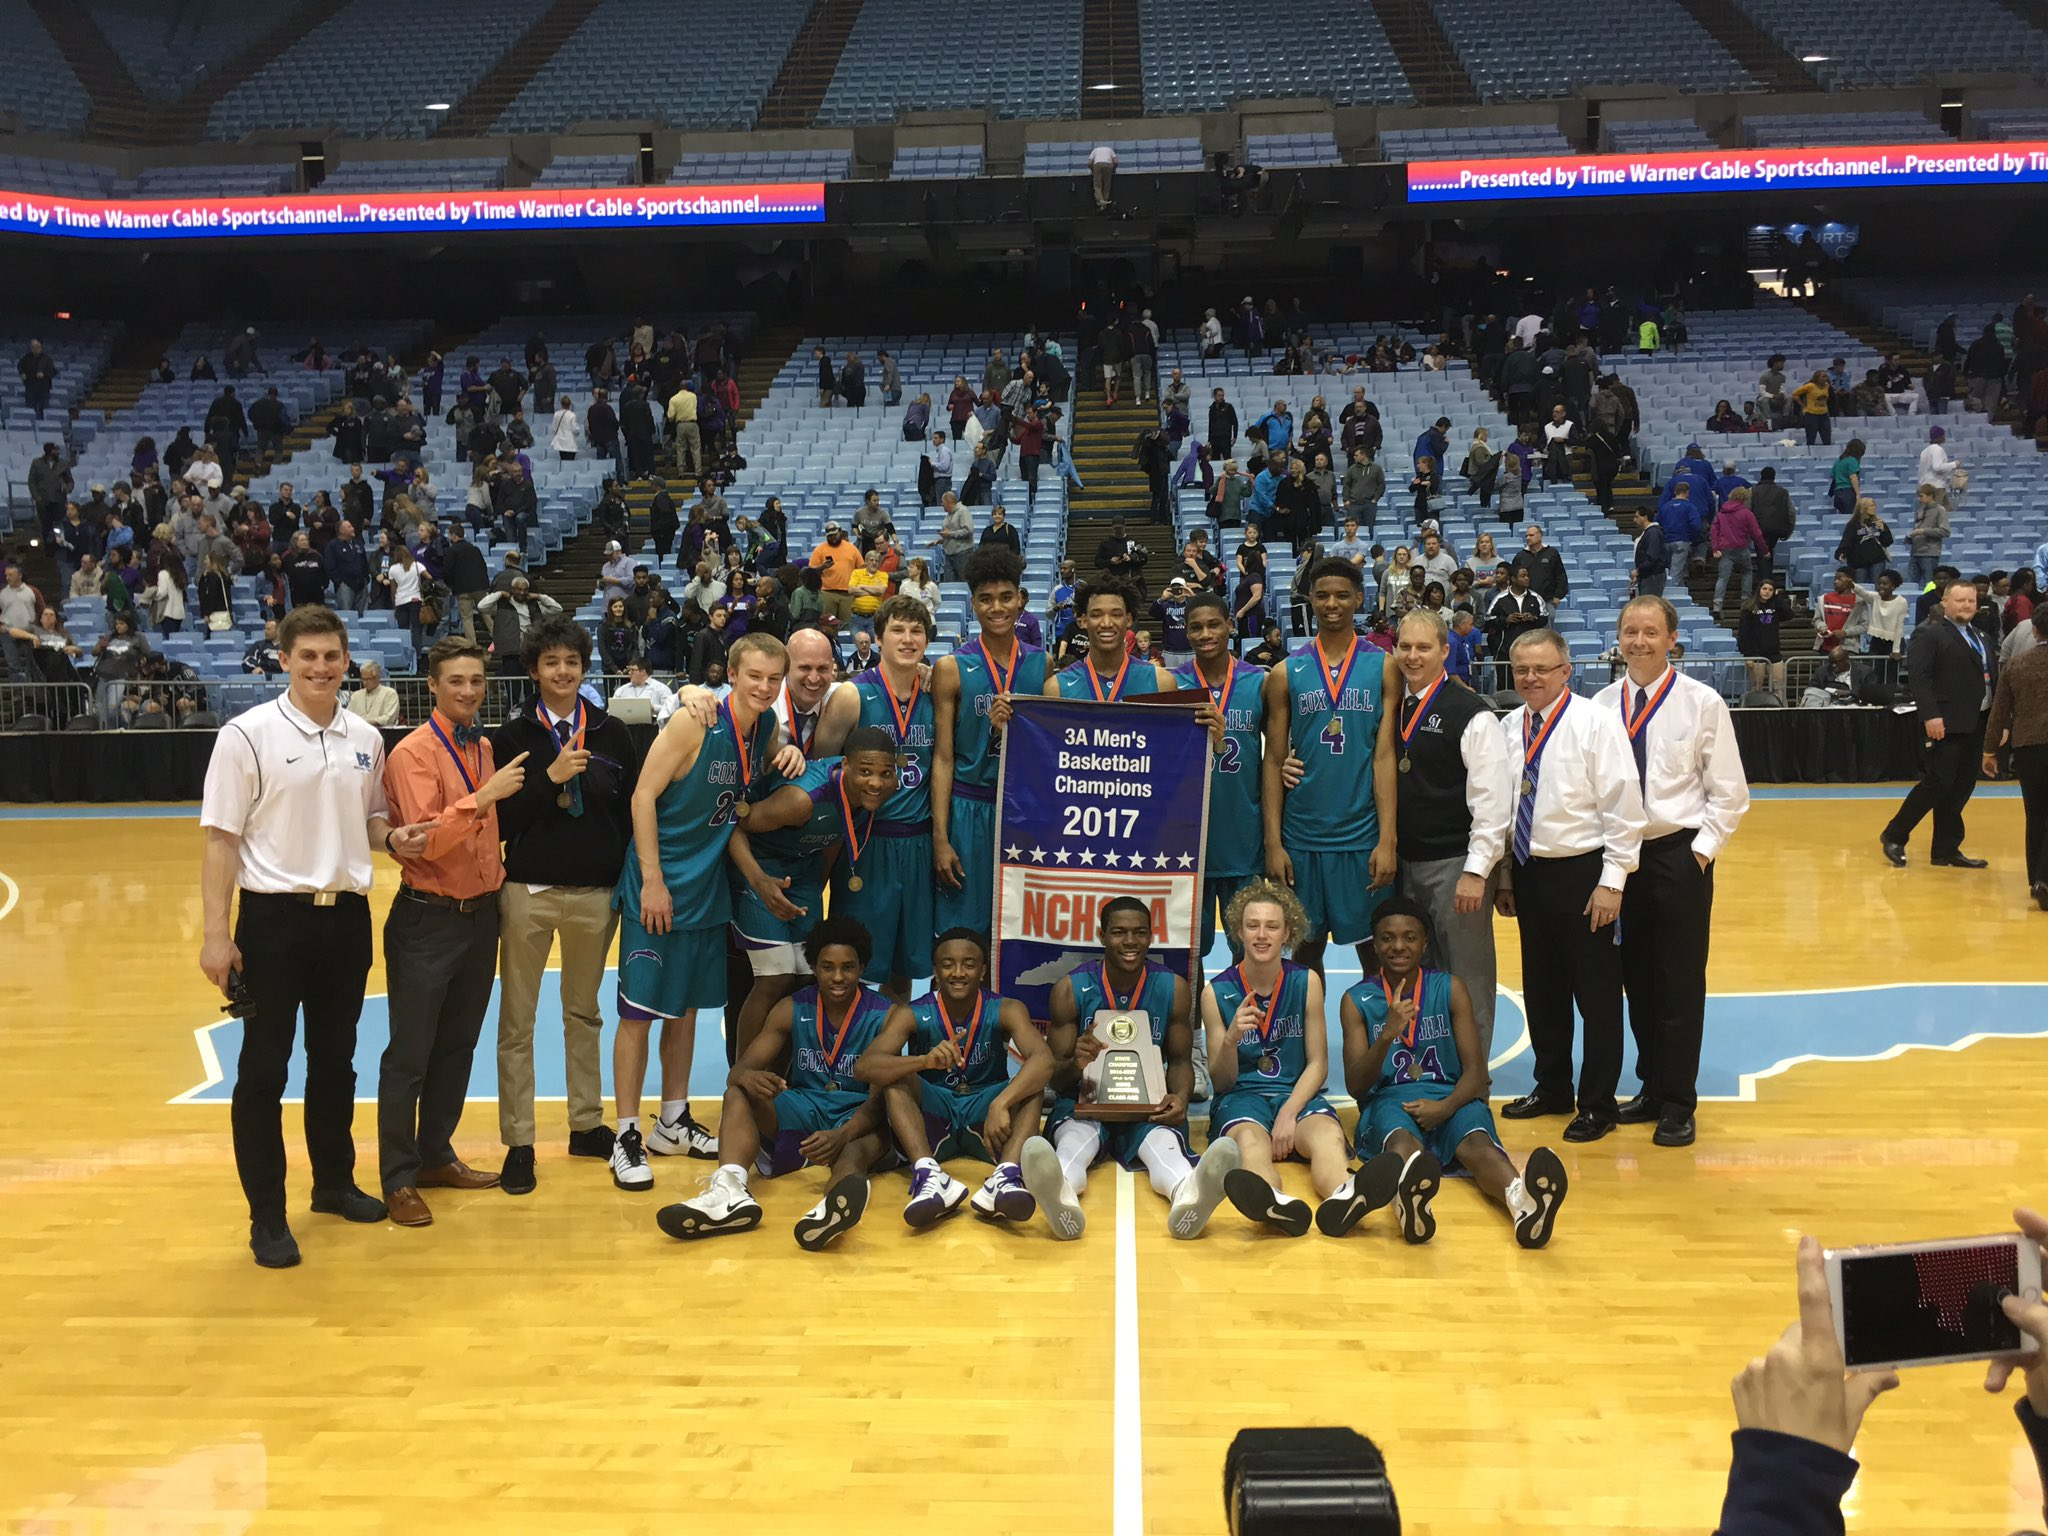 2017 @NCHSAA 3A Basketball State Champions- Cox Mill Chargers!! ⚡️🏀🔥💍🏆 https://t.co/RxyCTWklxJ